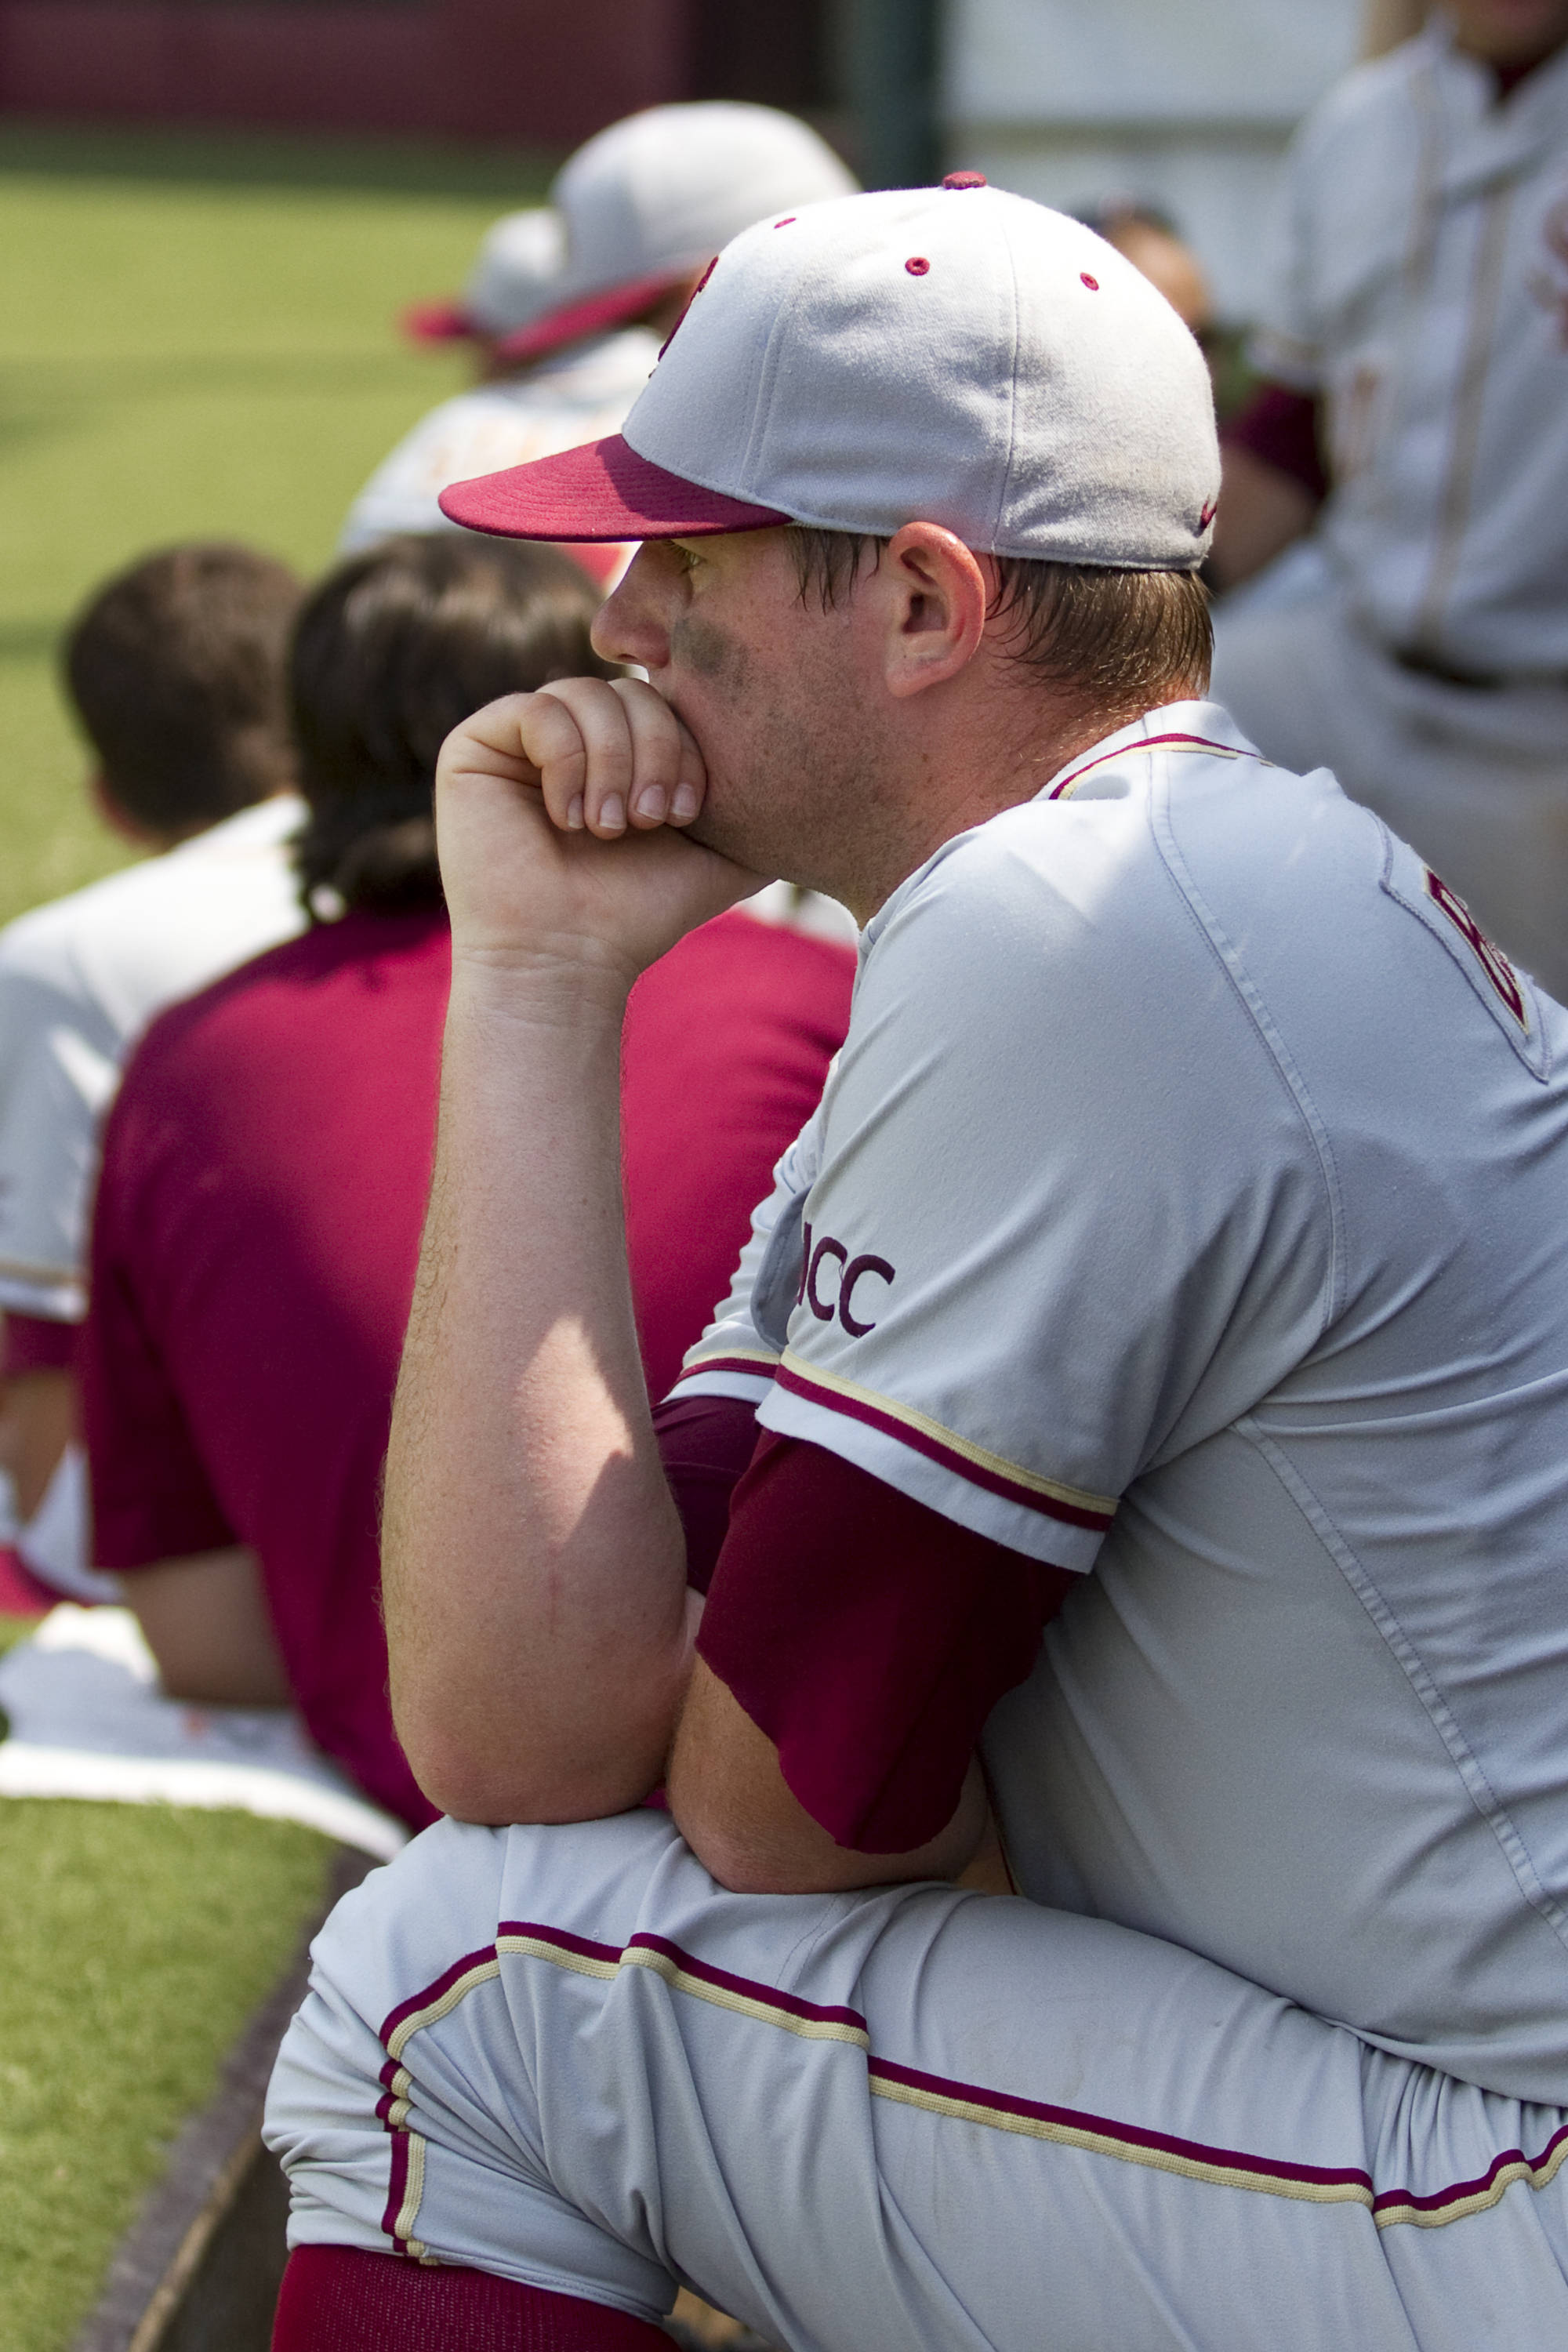 Brian Busch (24) watches the Seminoles try catch Vanderbilt in the top of the ninth inning.